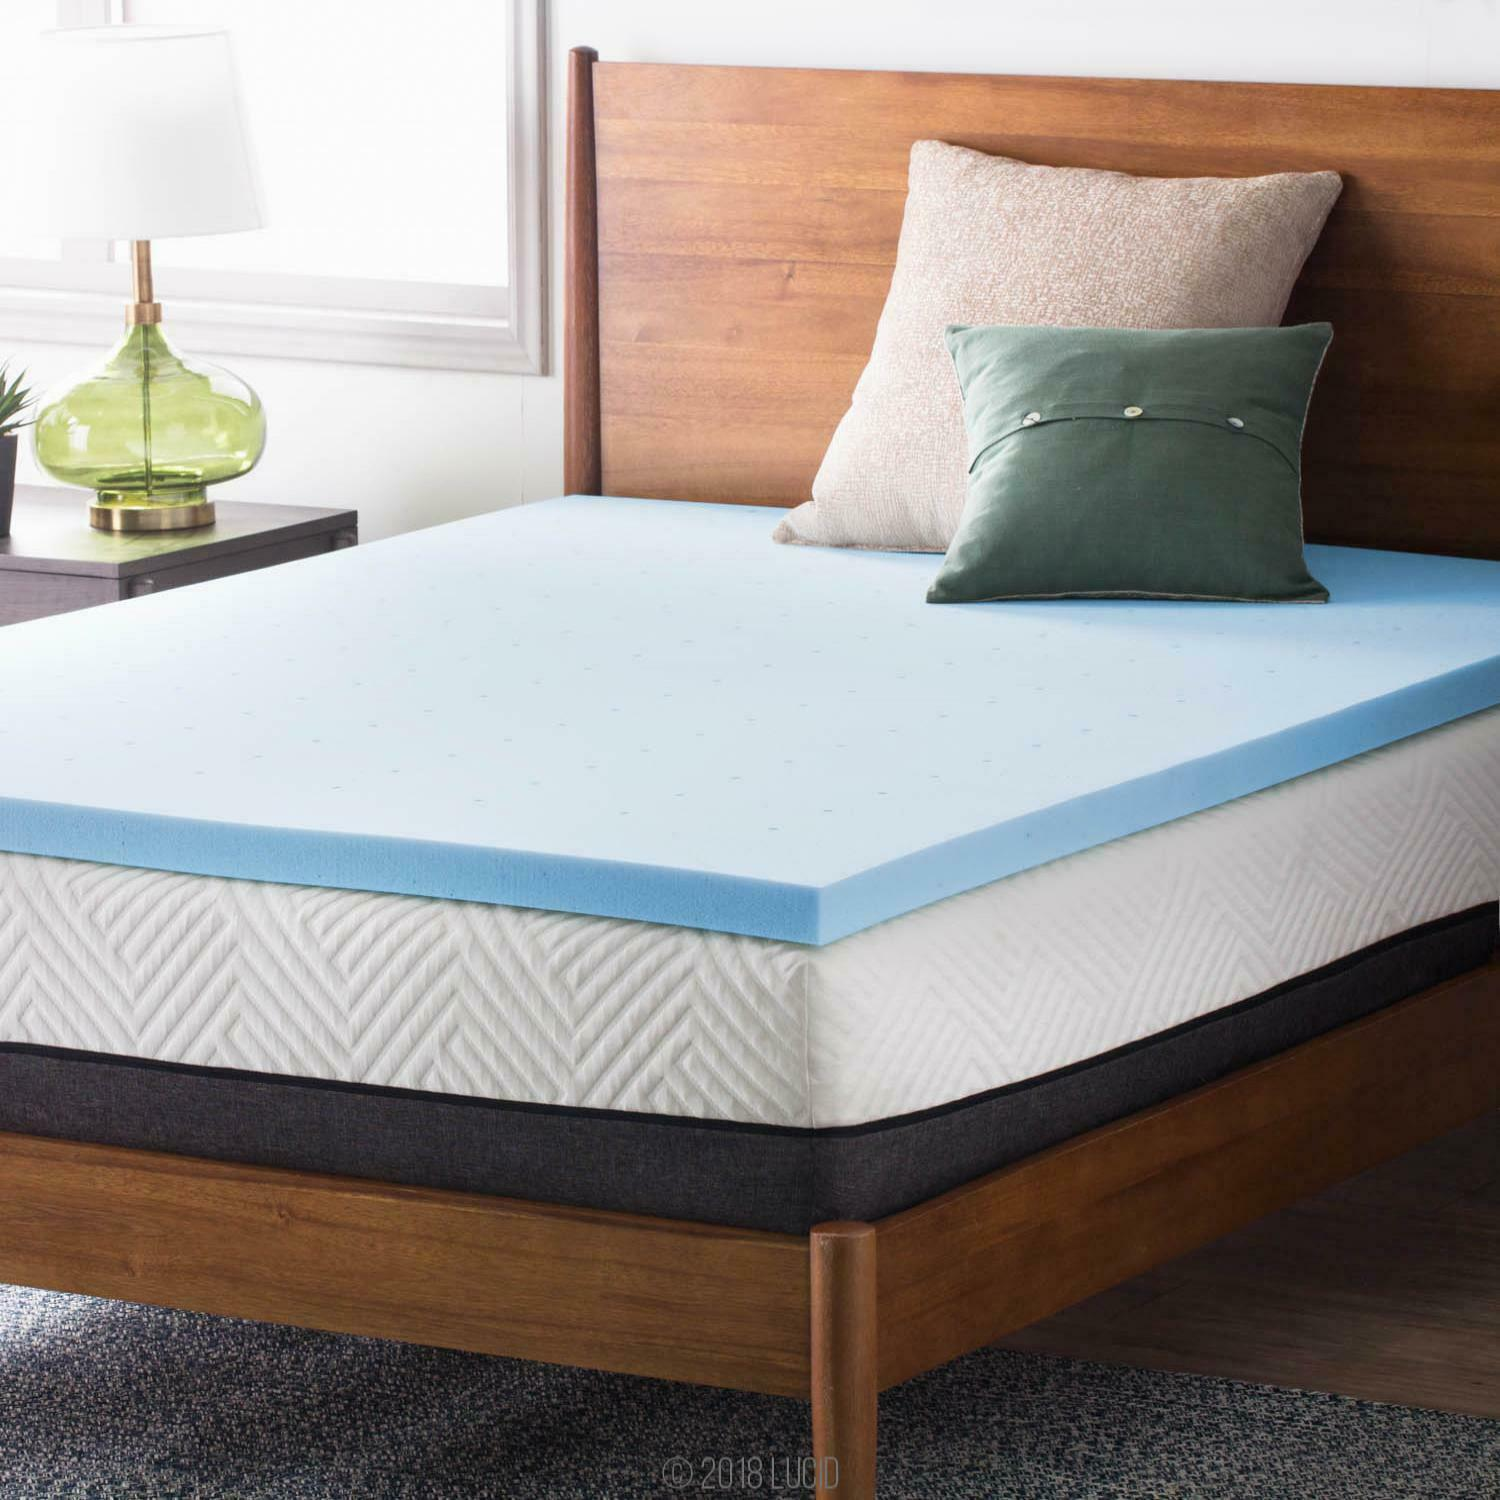 LUCID 2, 3, 4 Inch Cooling Gel Memory Foam Mattress Topper - Full Queen King